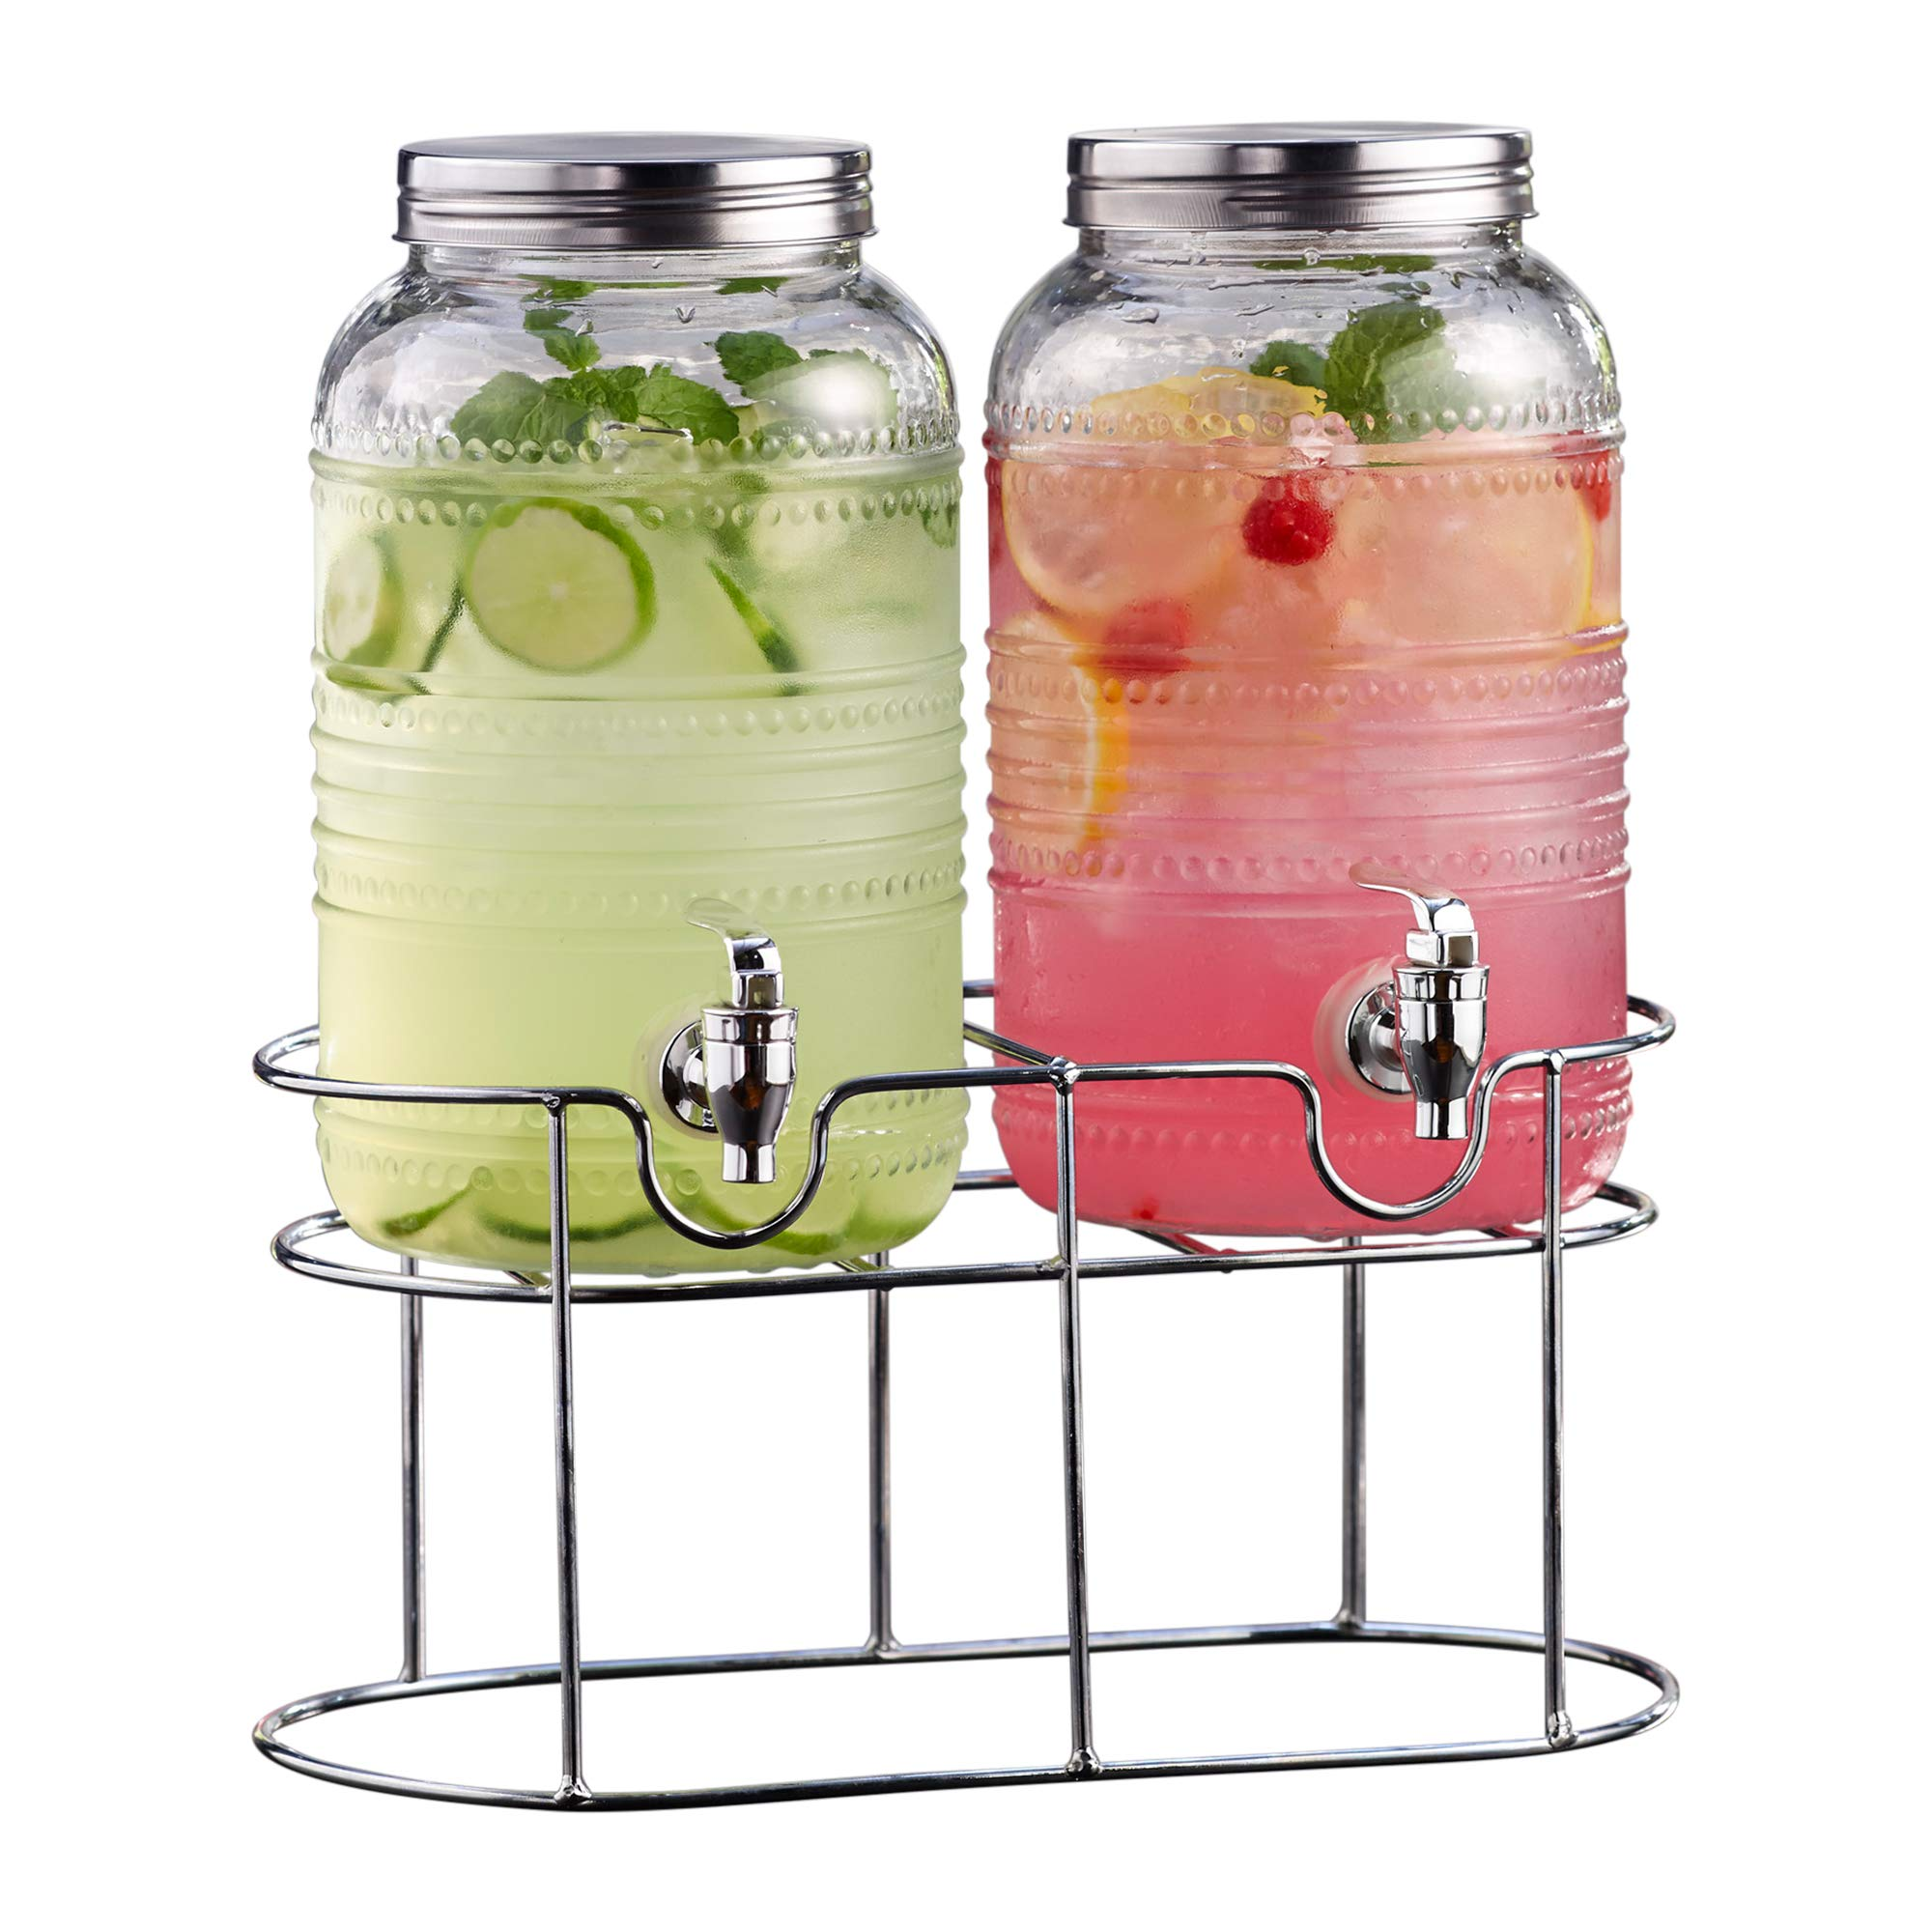 Style Setter Beverage Drink Double Dispensers Glass & Metal Stand & Lid (Set of 2), Clear, 1 Gallon Each by Style Setter